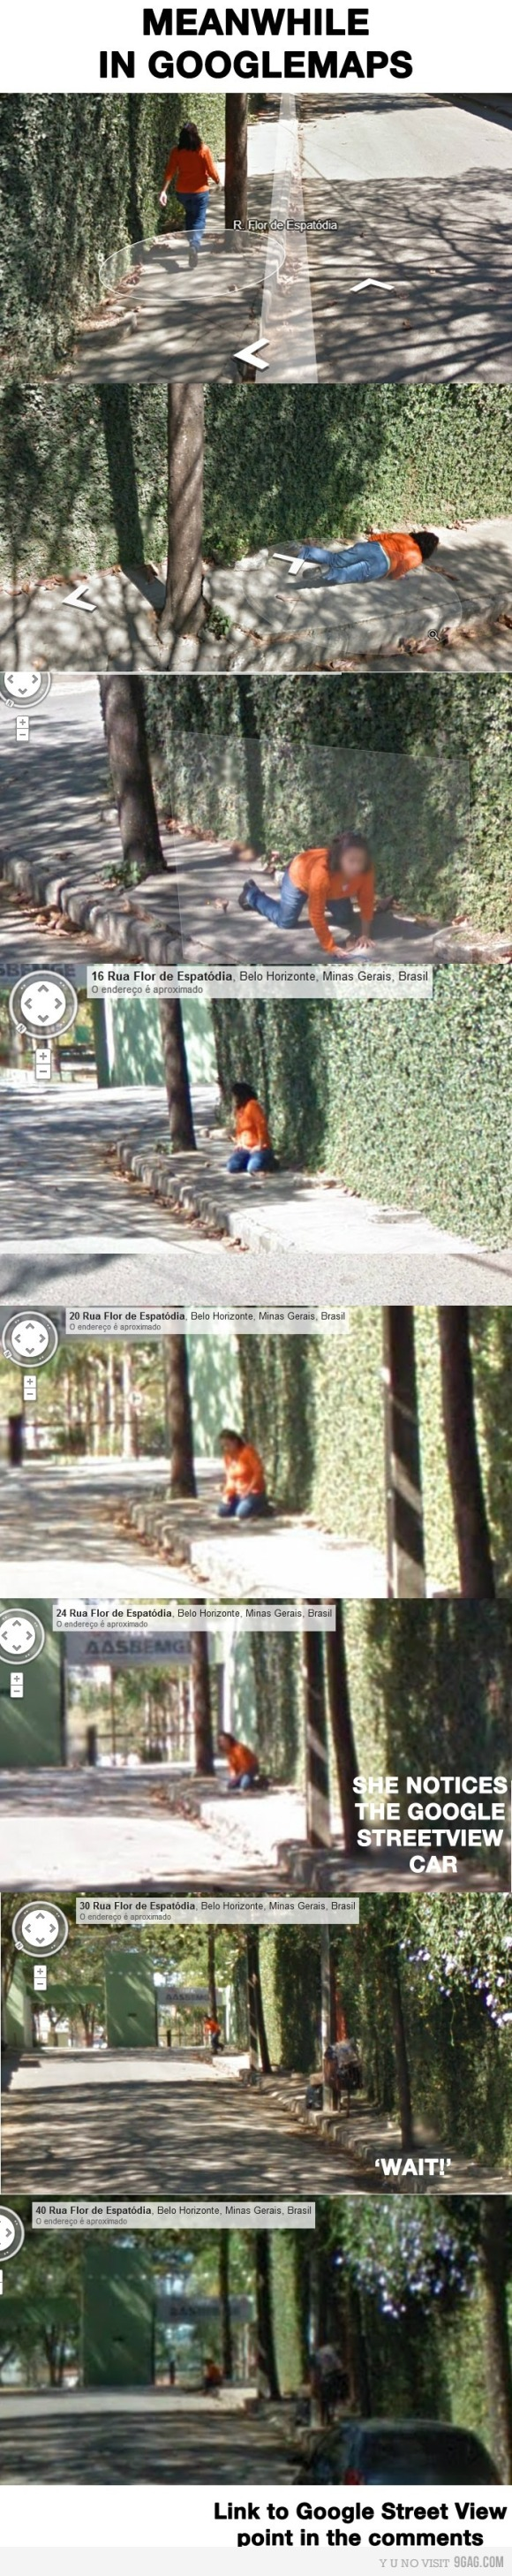 Fall in Google Street View